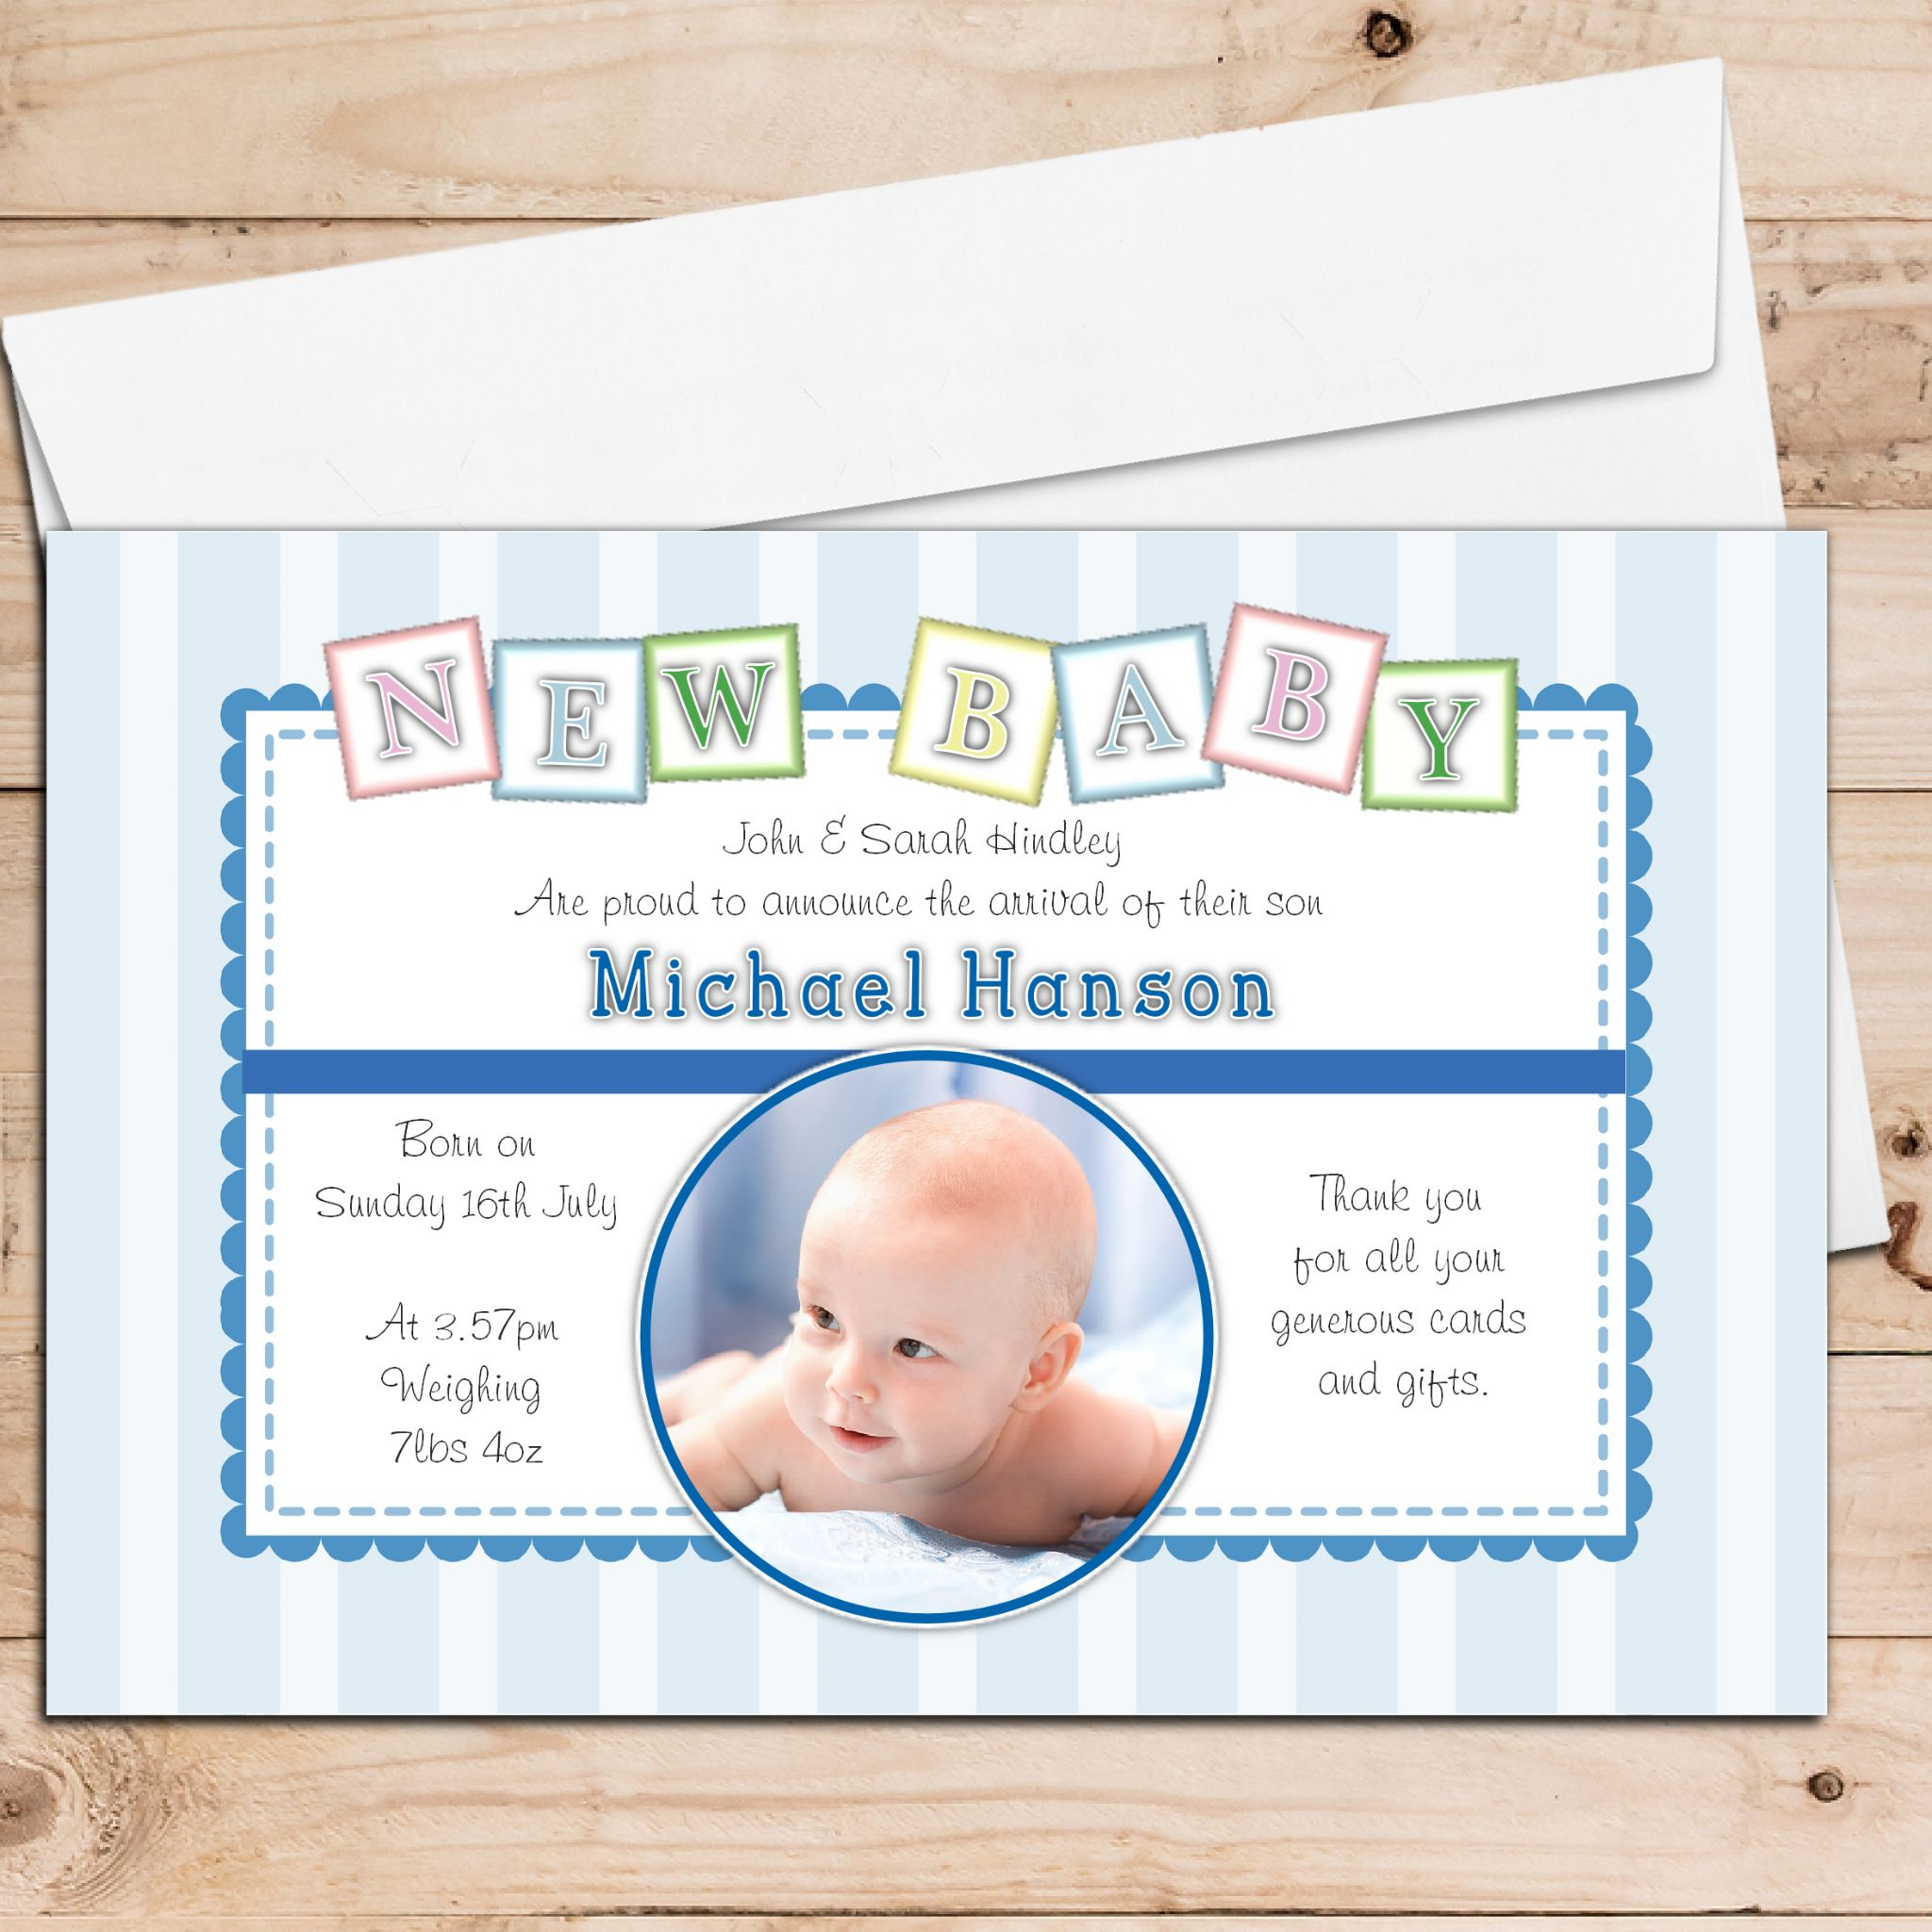 Personalised Birth Announcement Cards – Birth Announcement Card